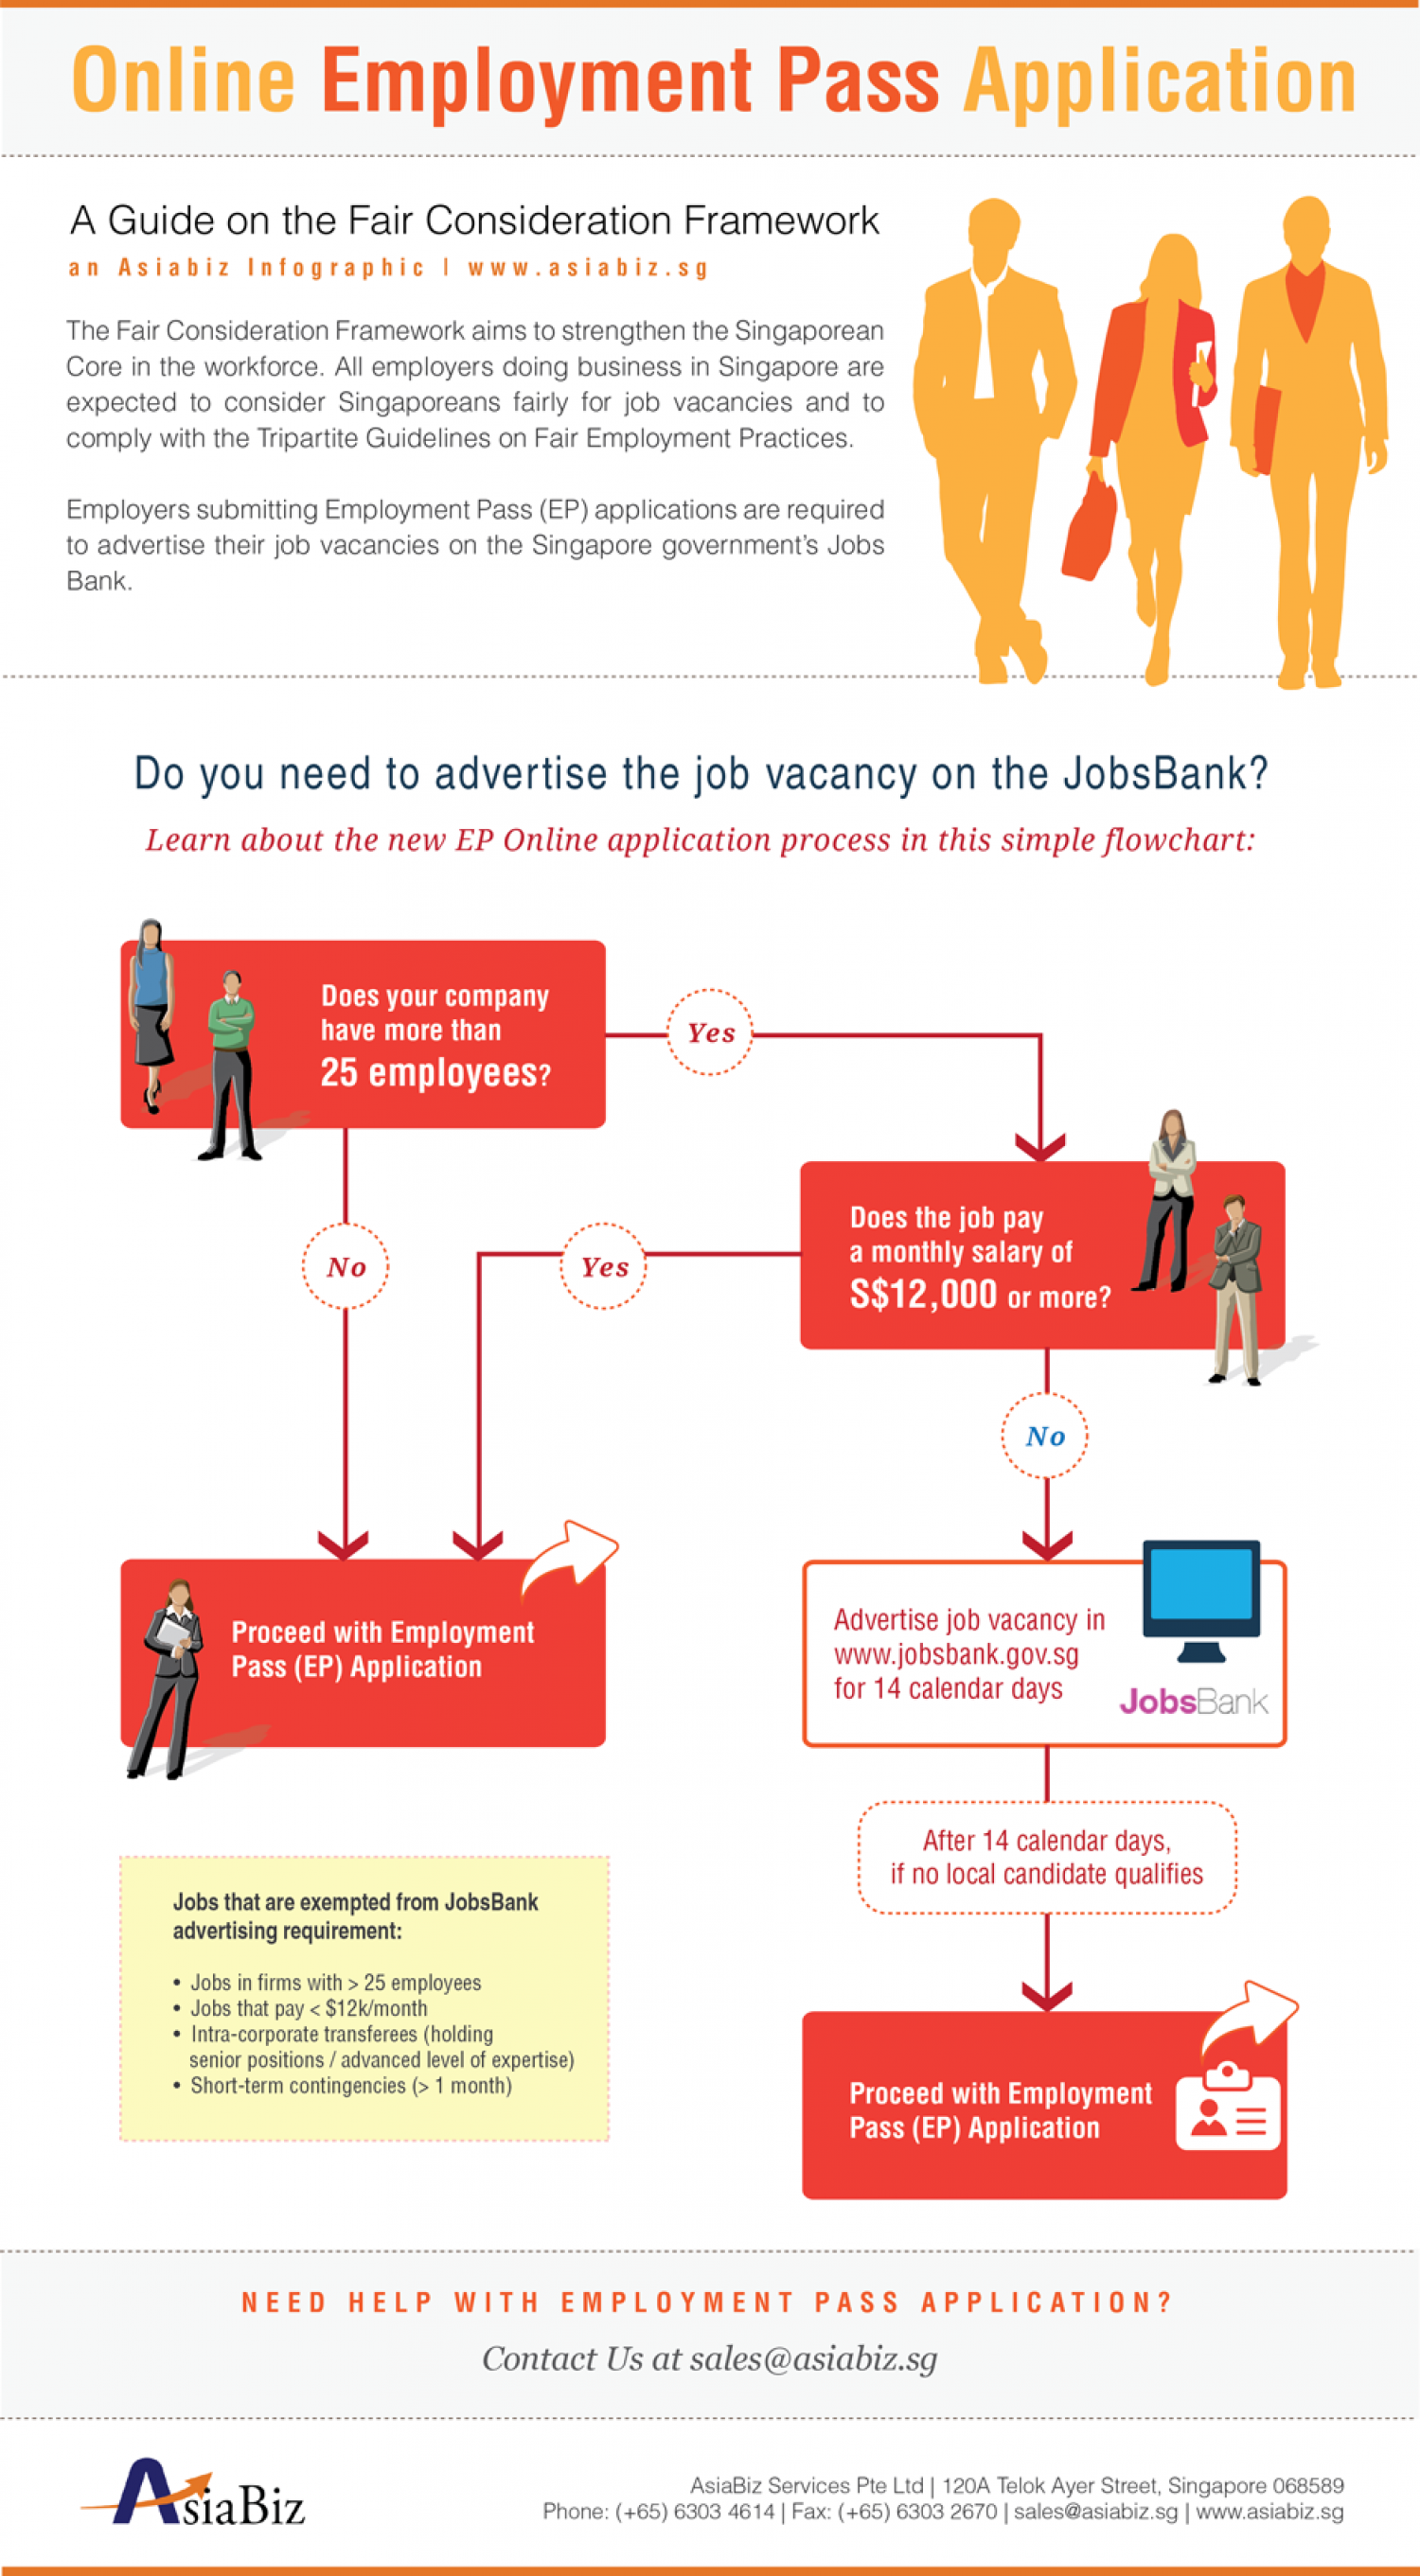 Online Employment Pass Application – Criteria for JobsBank Exemption Infographic